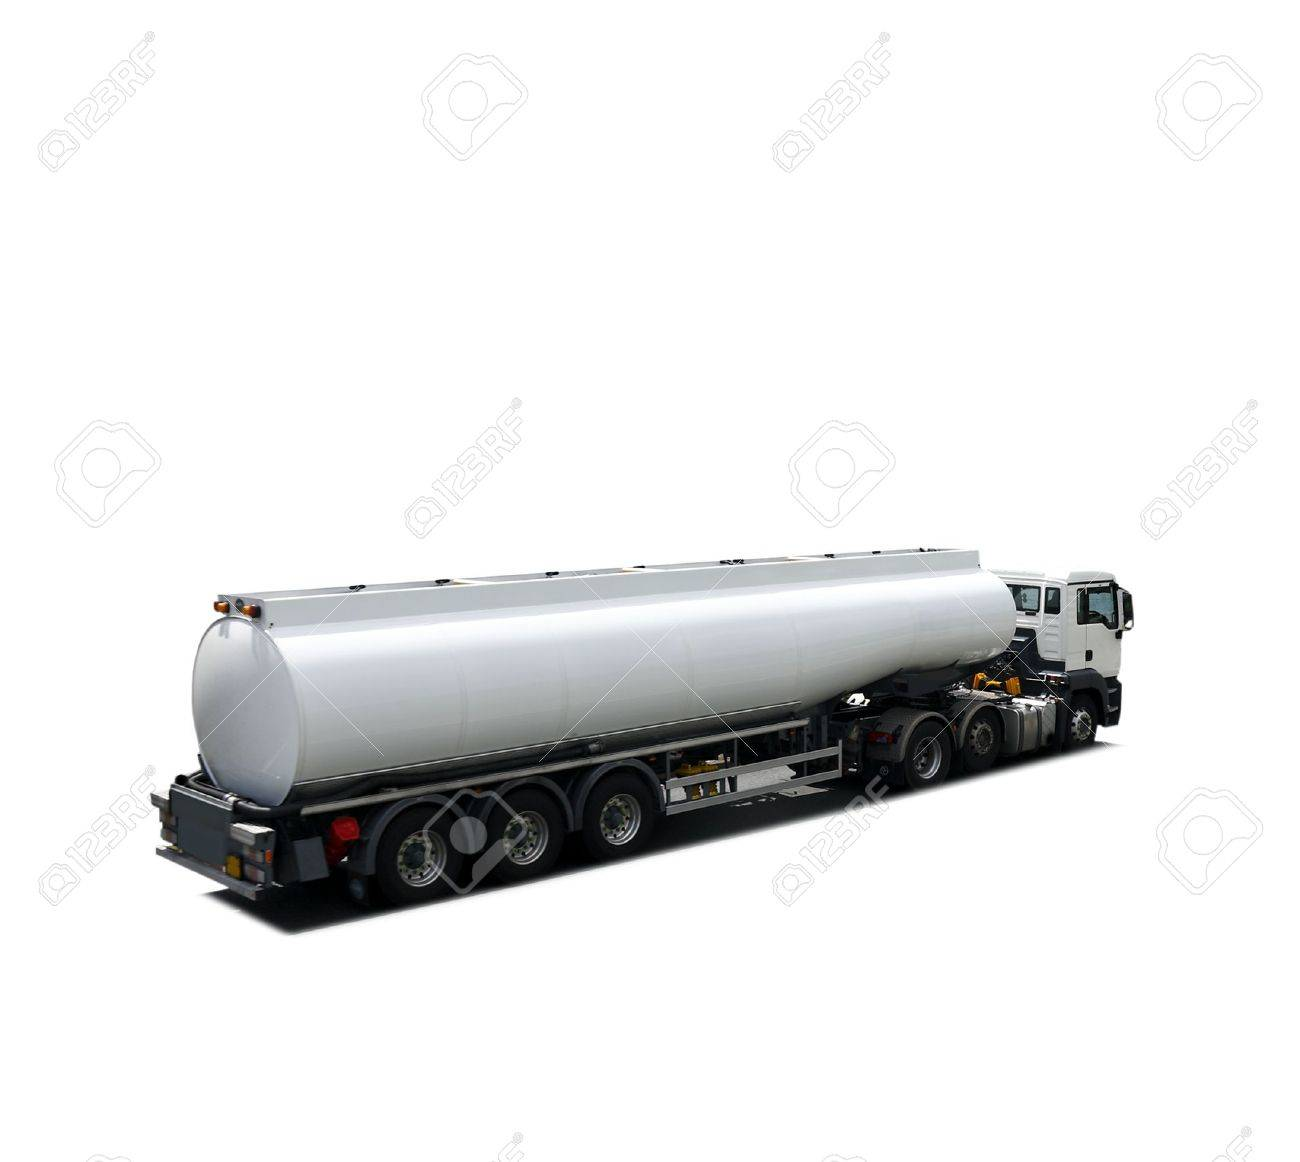 Fuel tanker truck isolated Stock Photo - 8162335